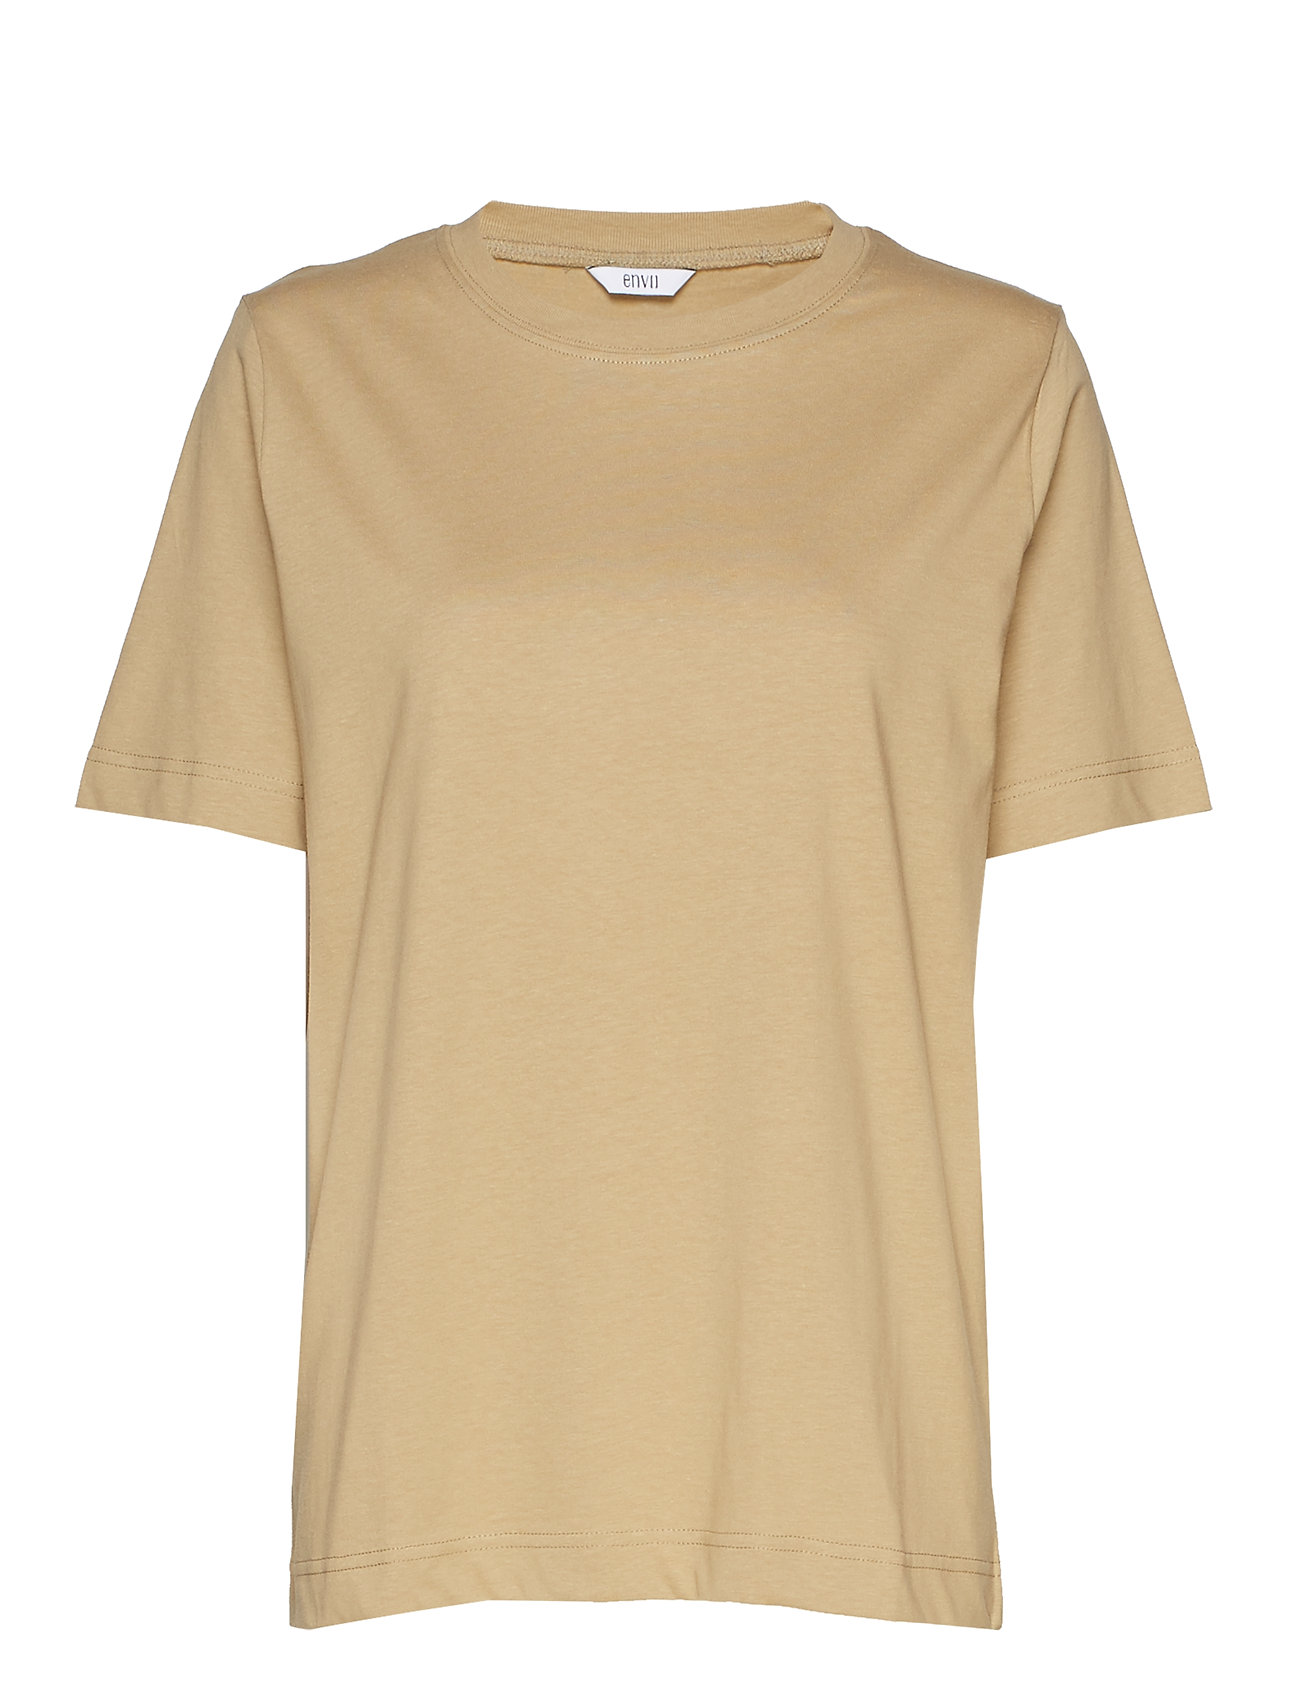 Envii ENBEVERLY SS TEE 5310 - TWILL